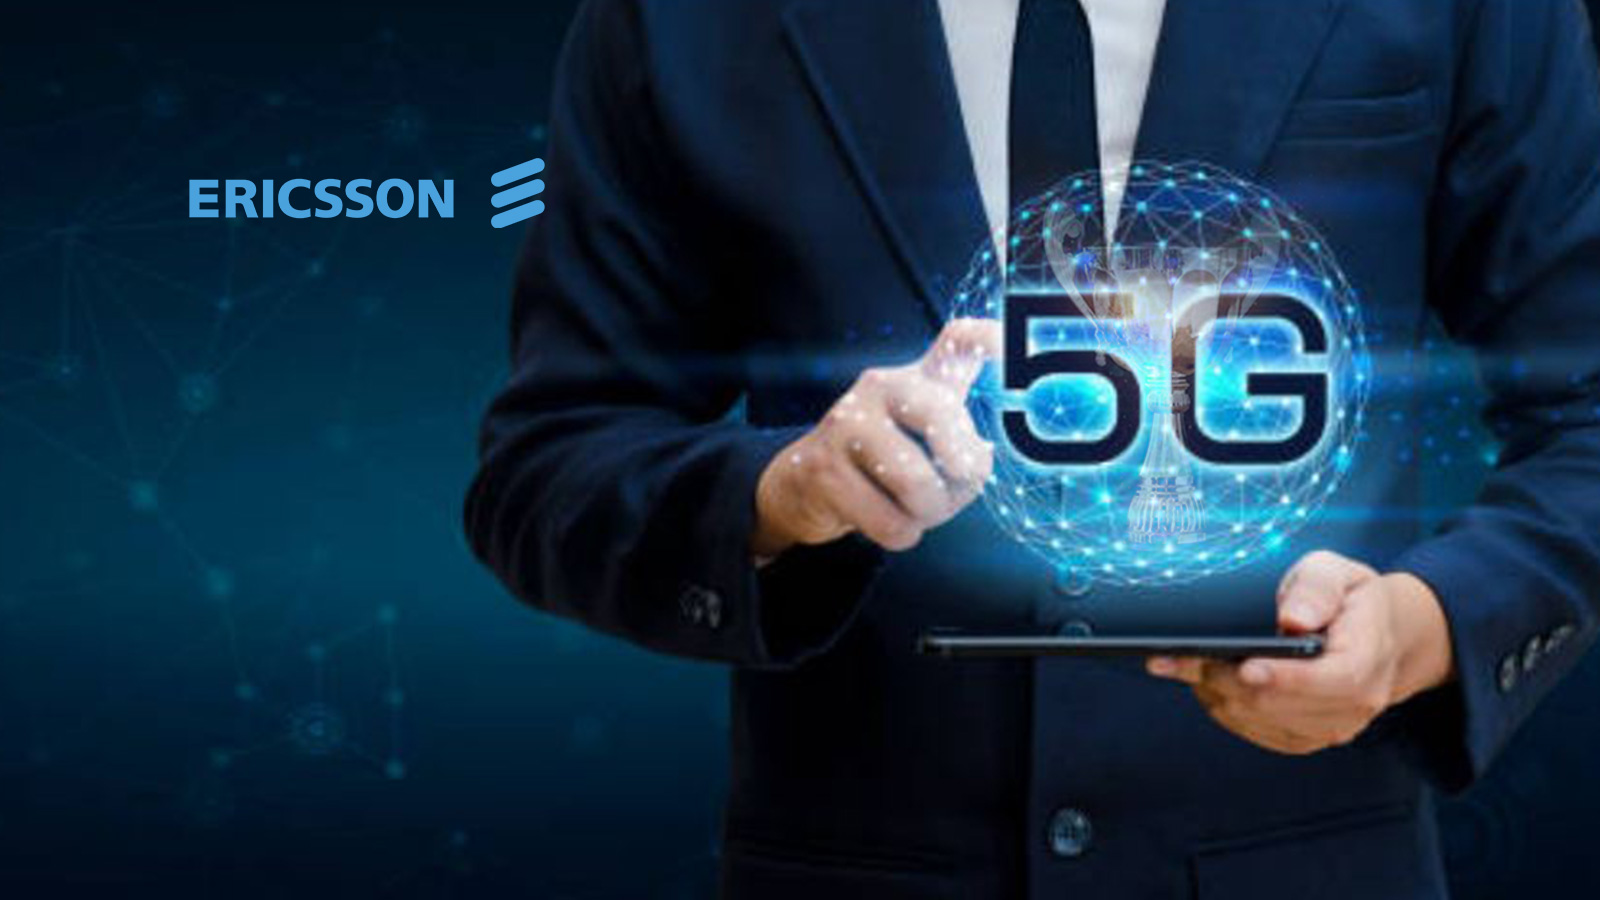 Ericsson wins 5G commercial contract from Korea Telecom